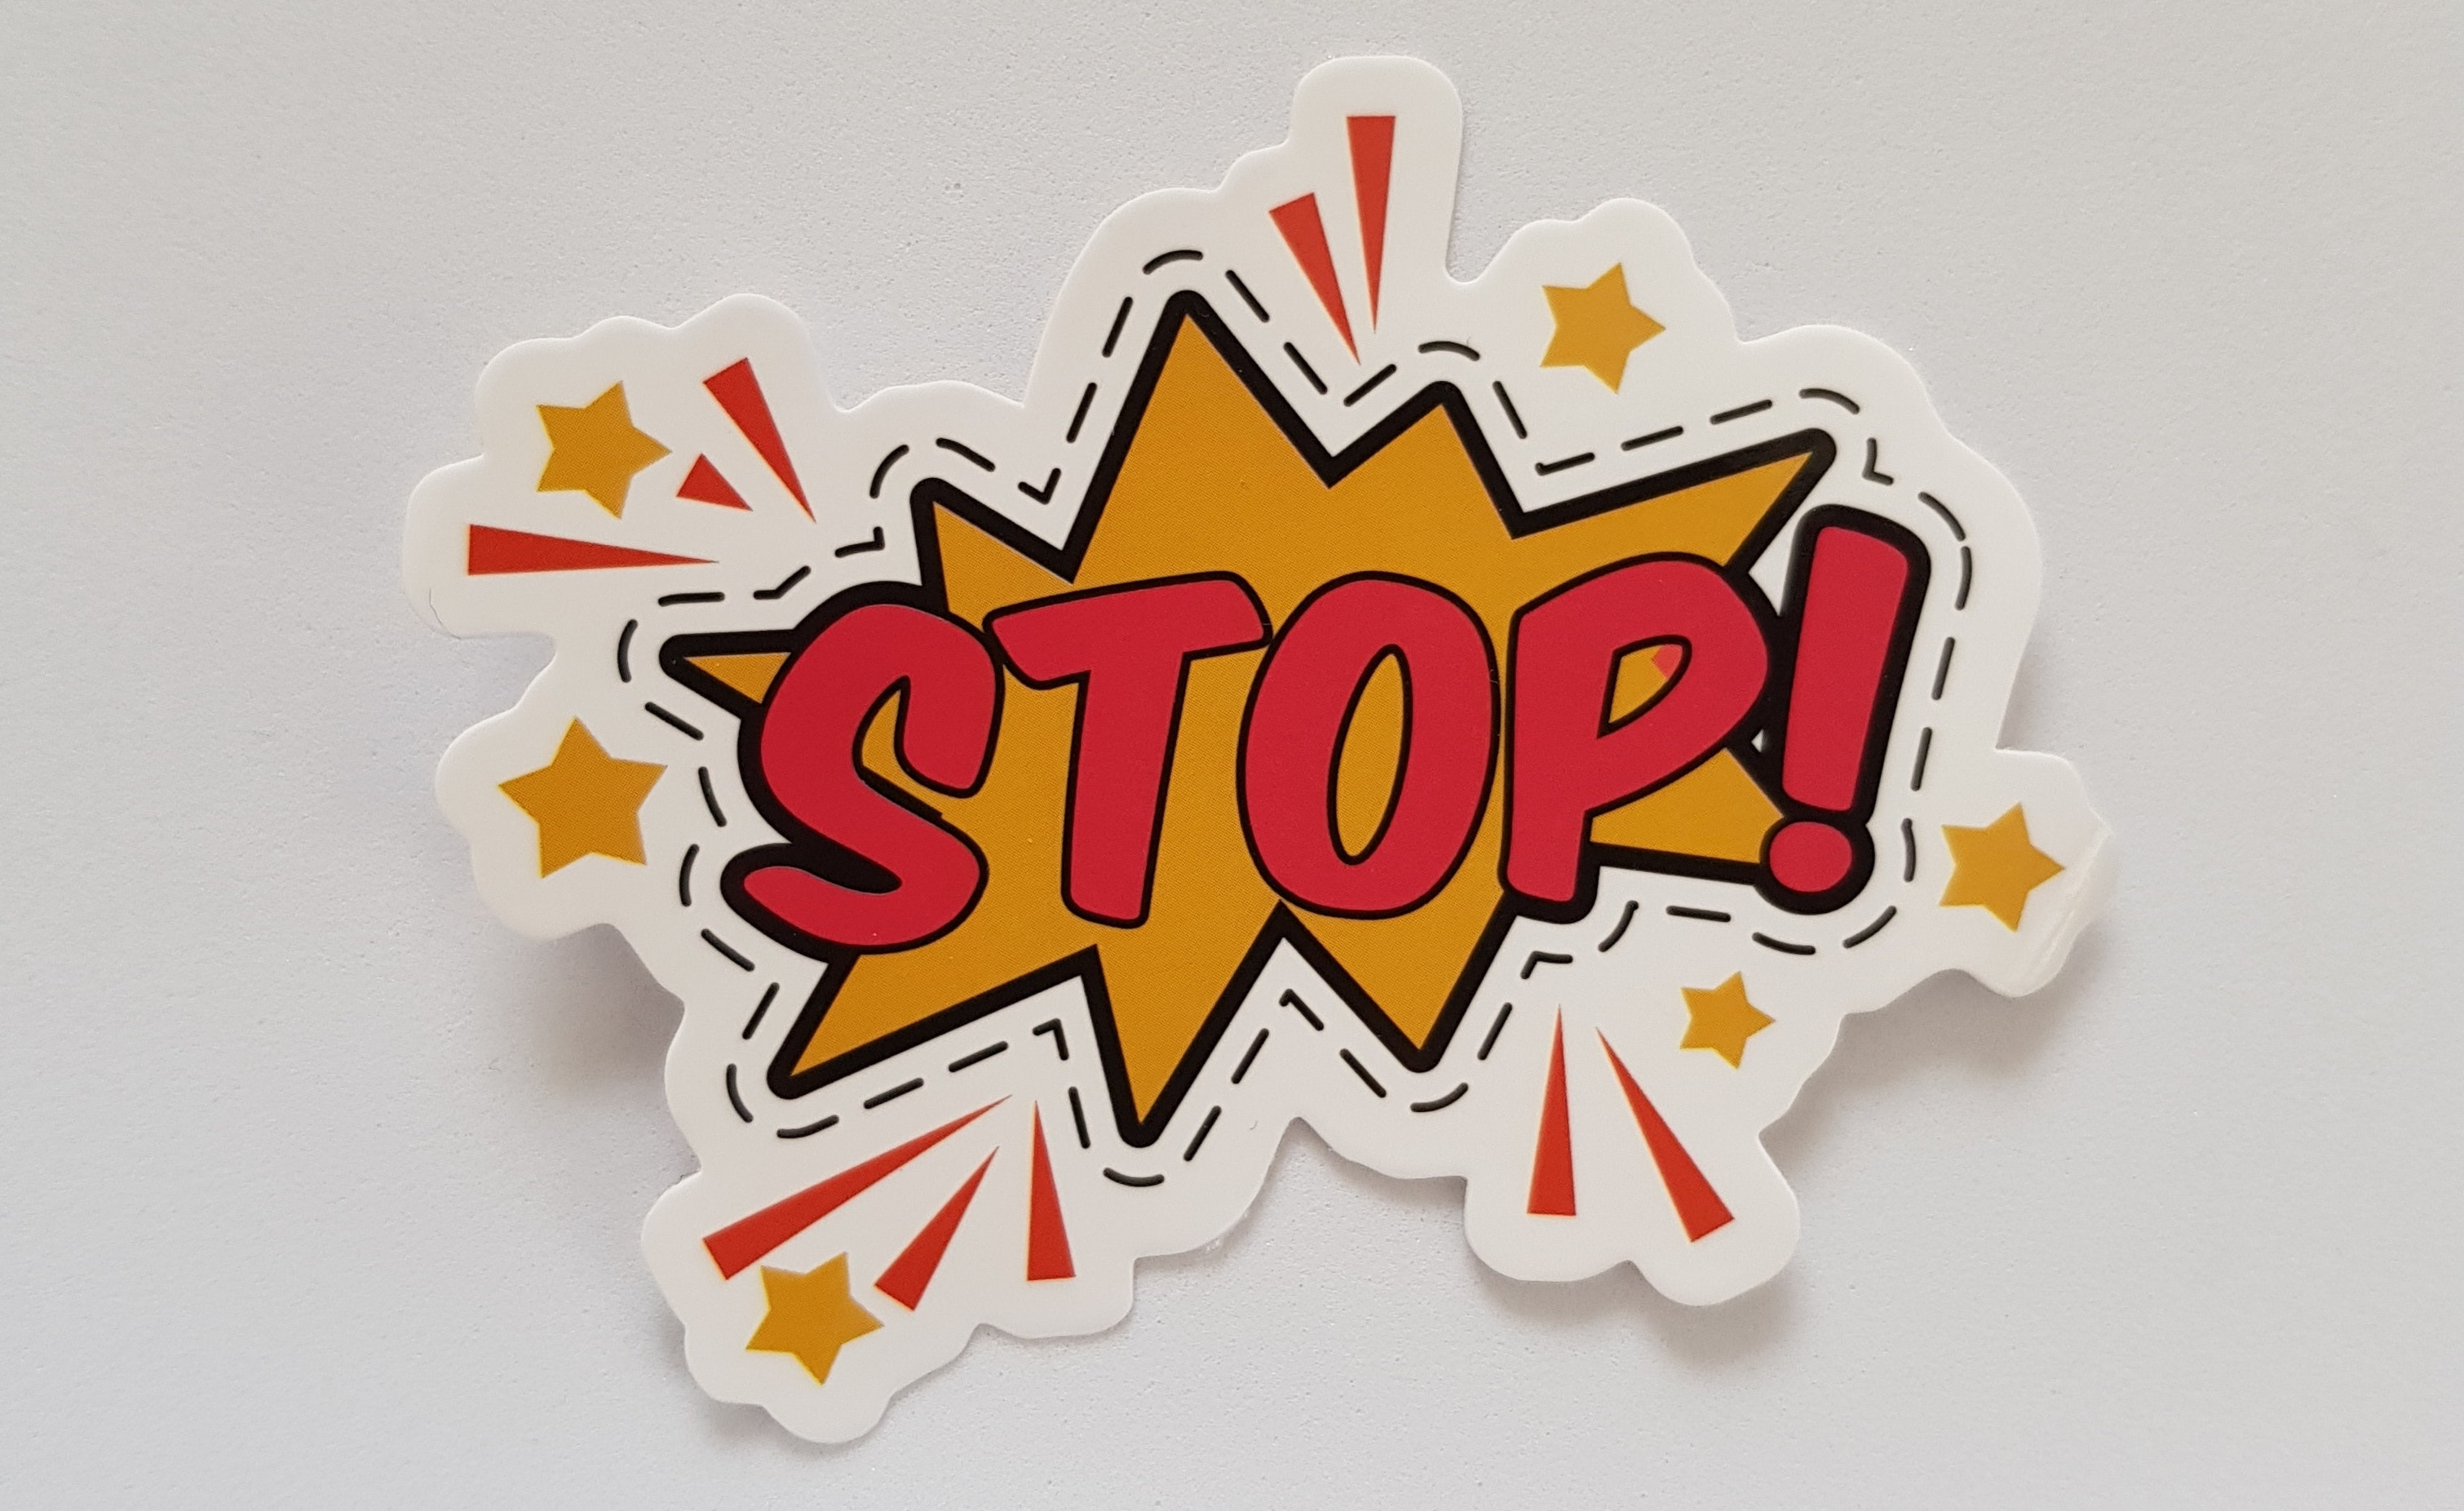 stock-red-and-yellow-stop-sticker-1749900